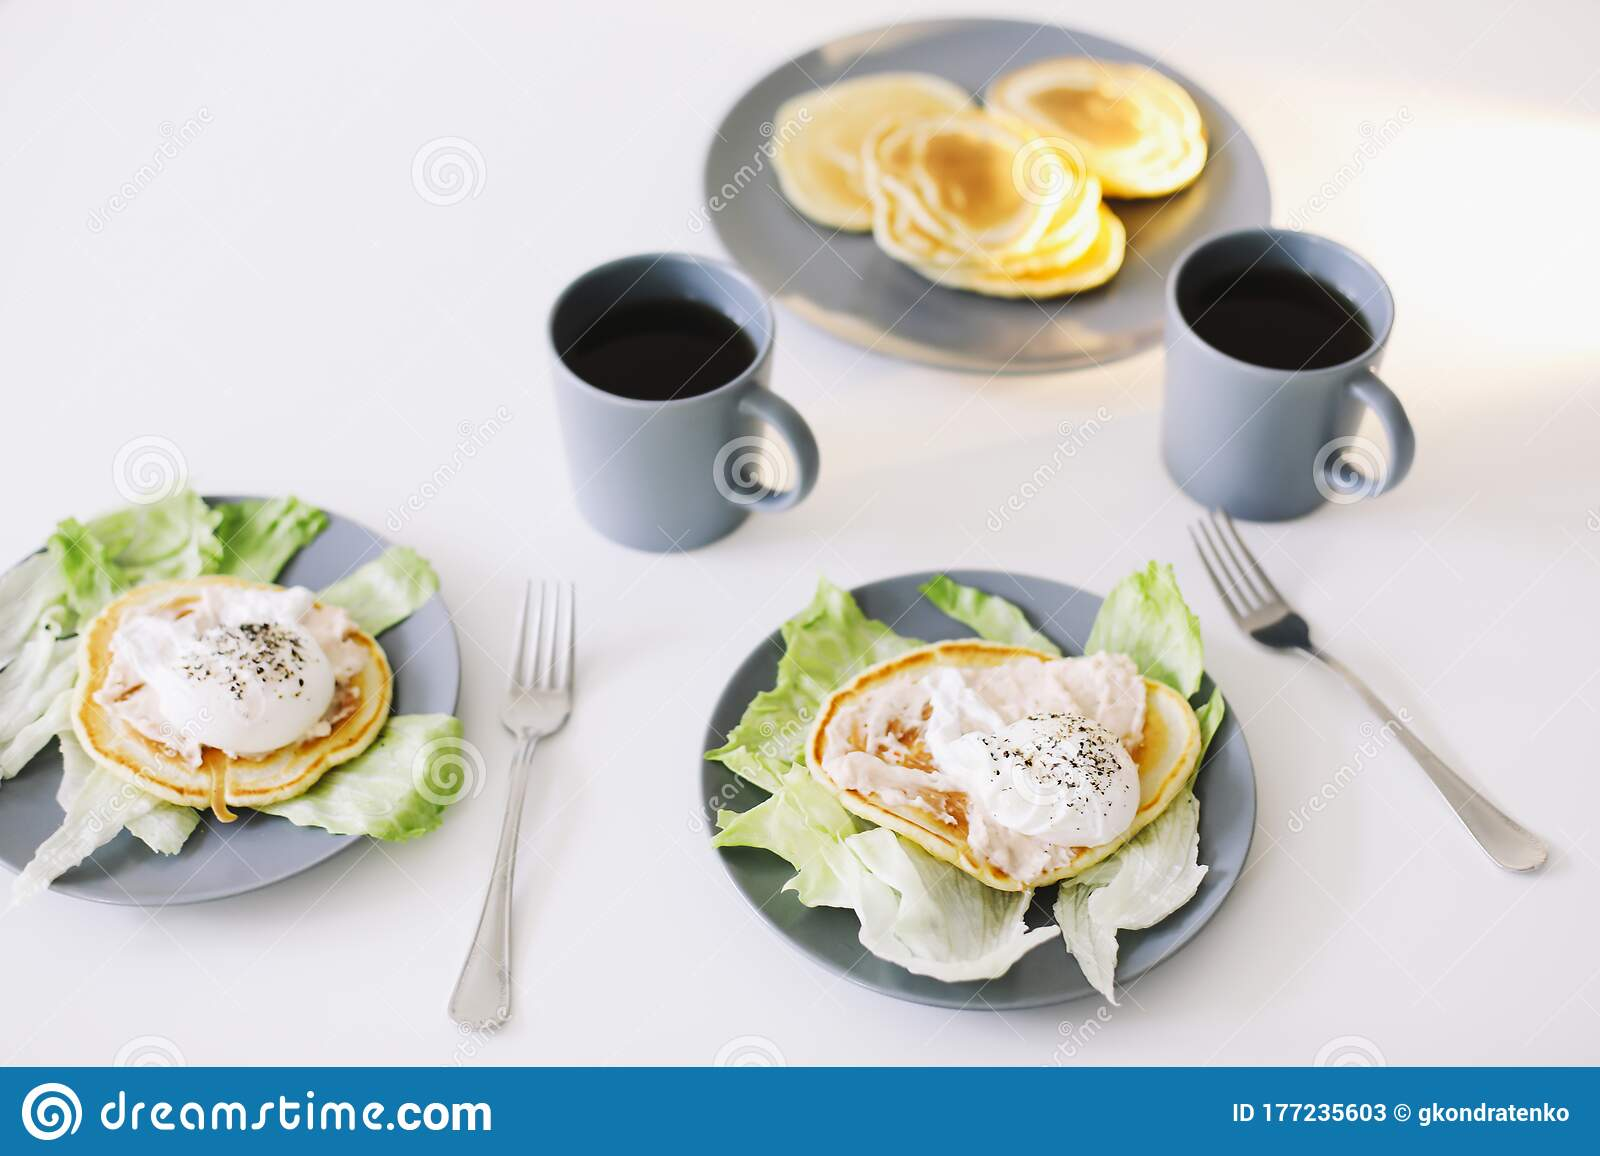 Healthy Nutritious Tasty Breakfast Pancakes Poached Egg On Ceramic Plate And Coffee Cup Table Setting Food Photo Good Morning Stock Image Image Of Foodie Lunch 177235603